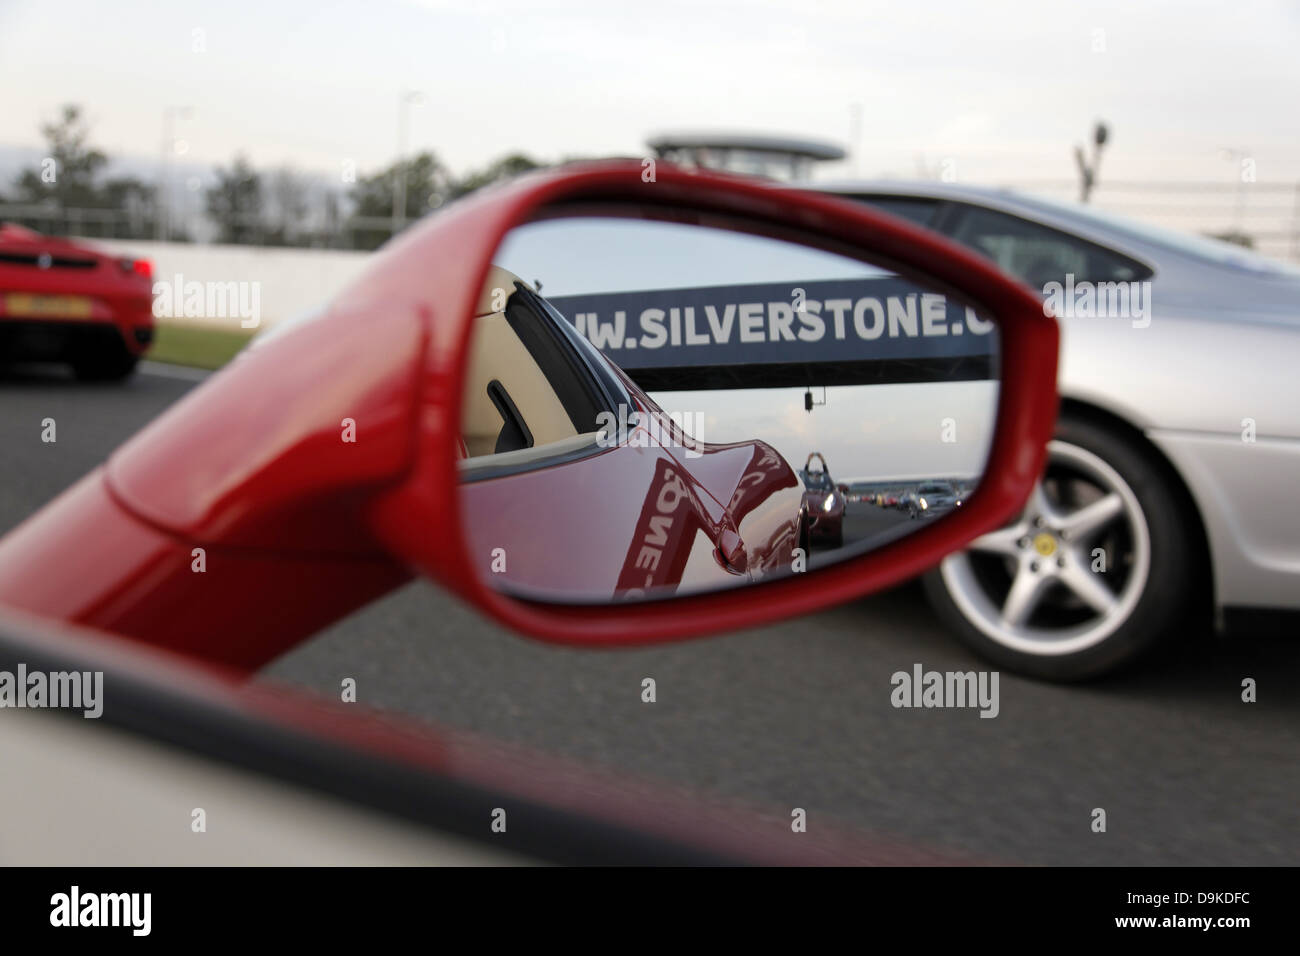 Ferrari 458 Circuit High Resolution Stock Photography And Images Alamy